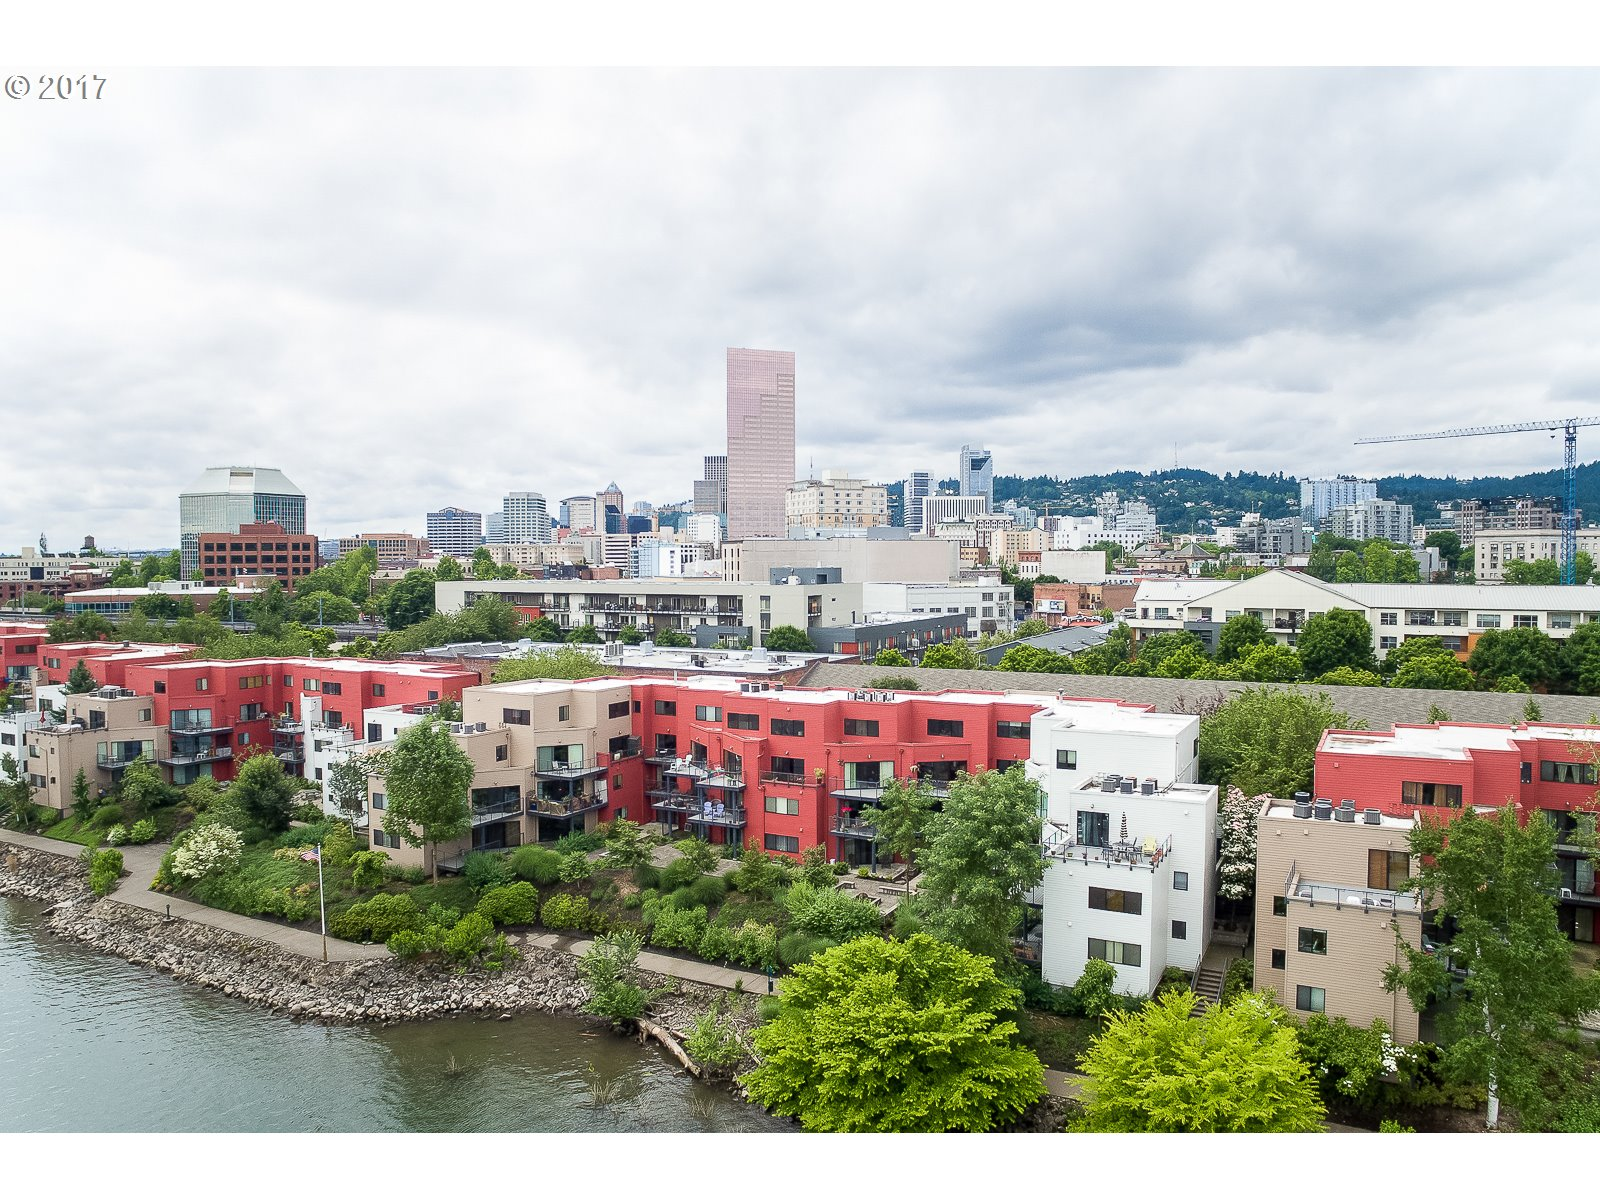 606 NW NAITO PKWY A19, Portland, OR 97209